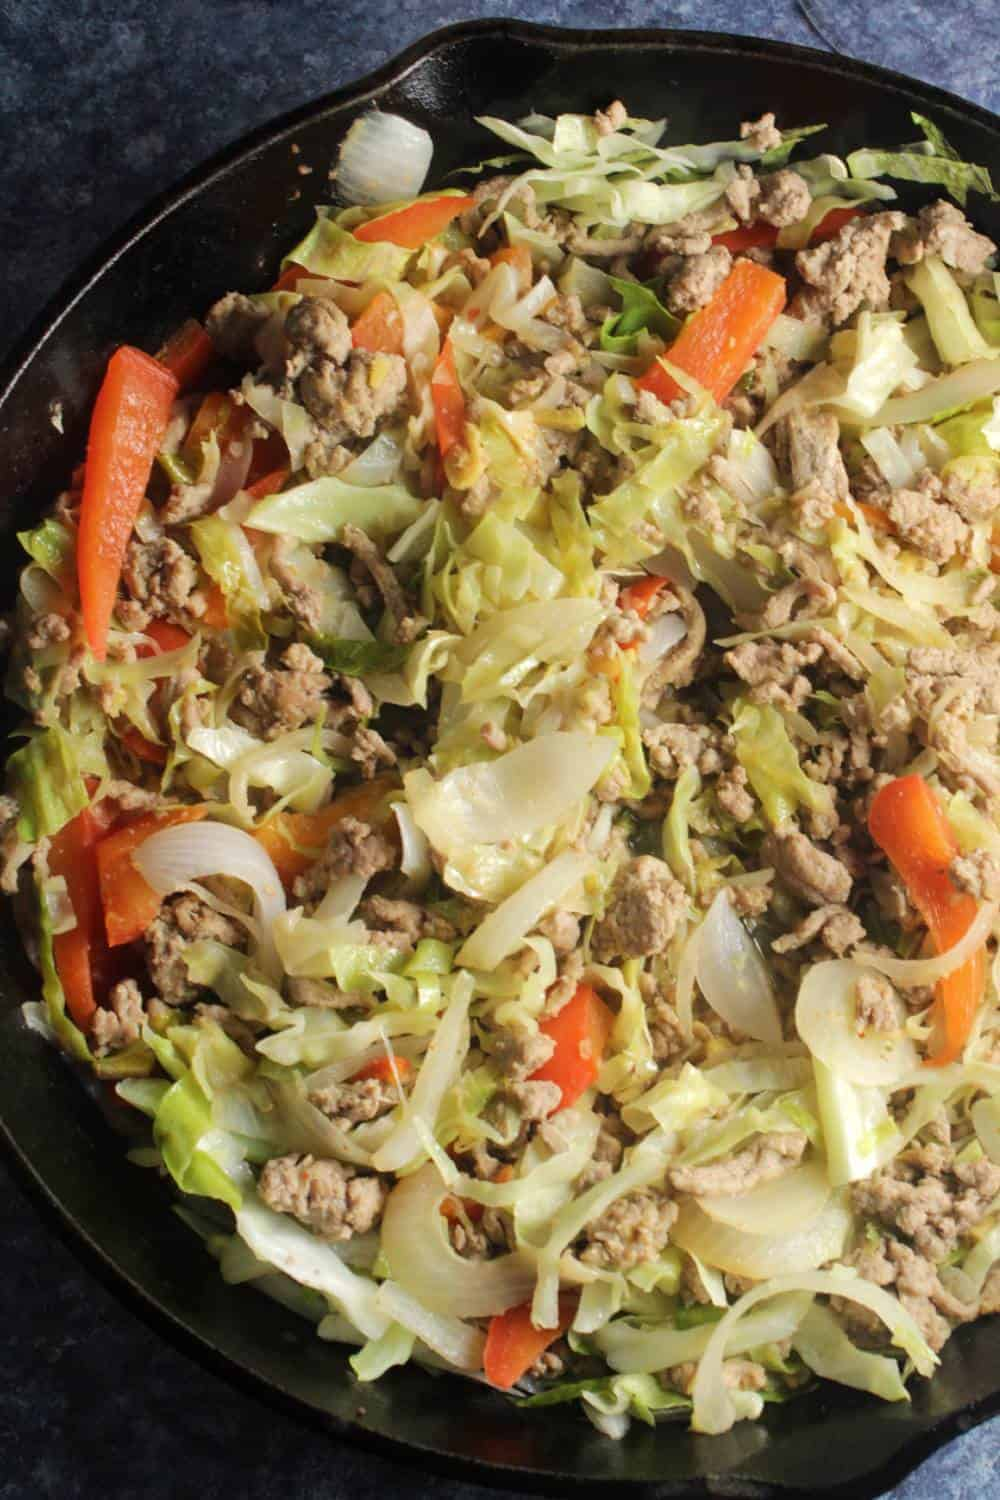 skillet with cabbage cooked with ground turkey